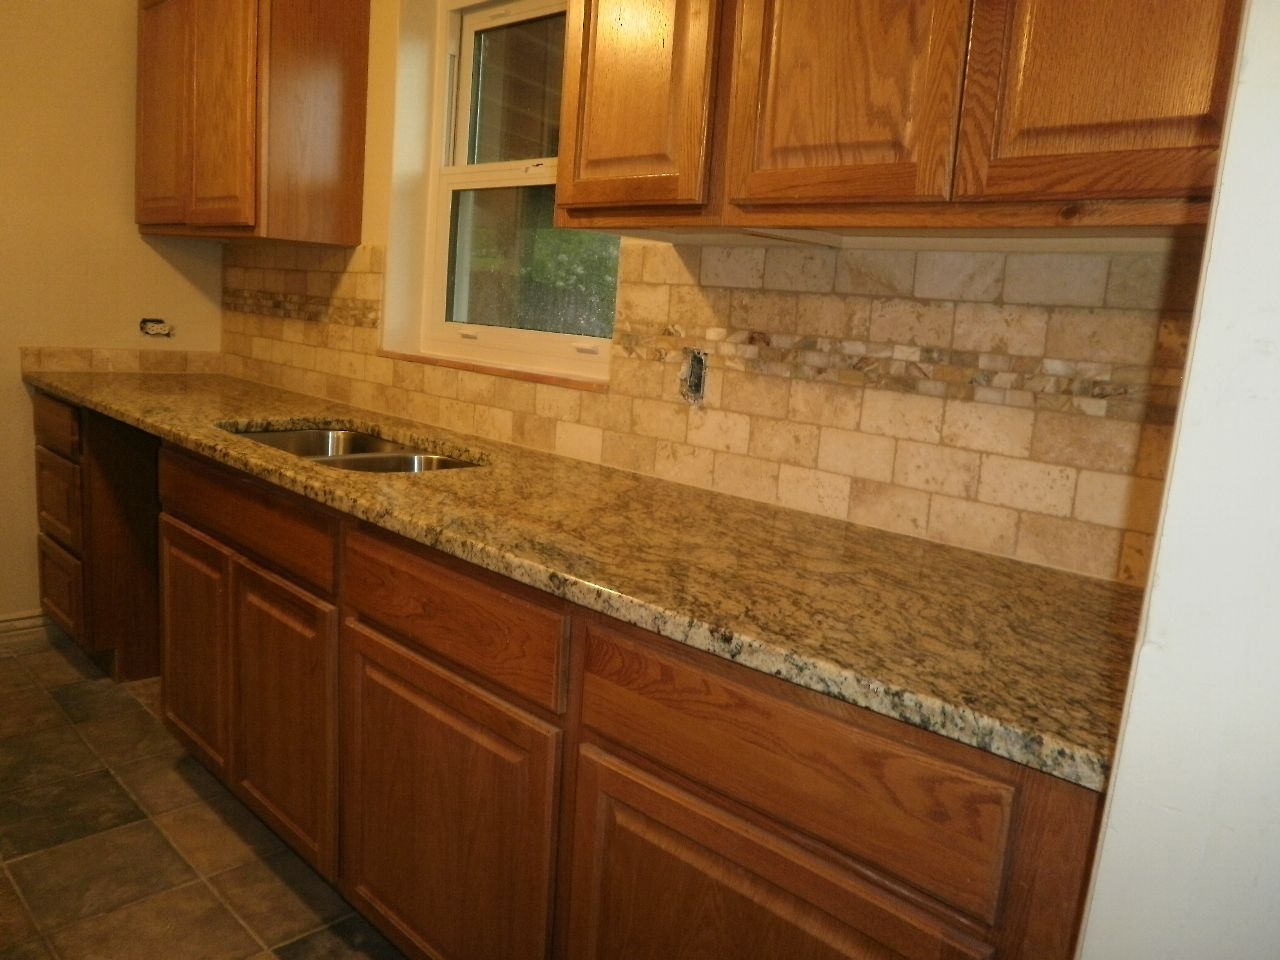 back splash kitchen backsplash designs tile backsplashes with granite countertops Kitchen Tile Backsplash Ideas Granite Countertops Backsplash